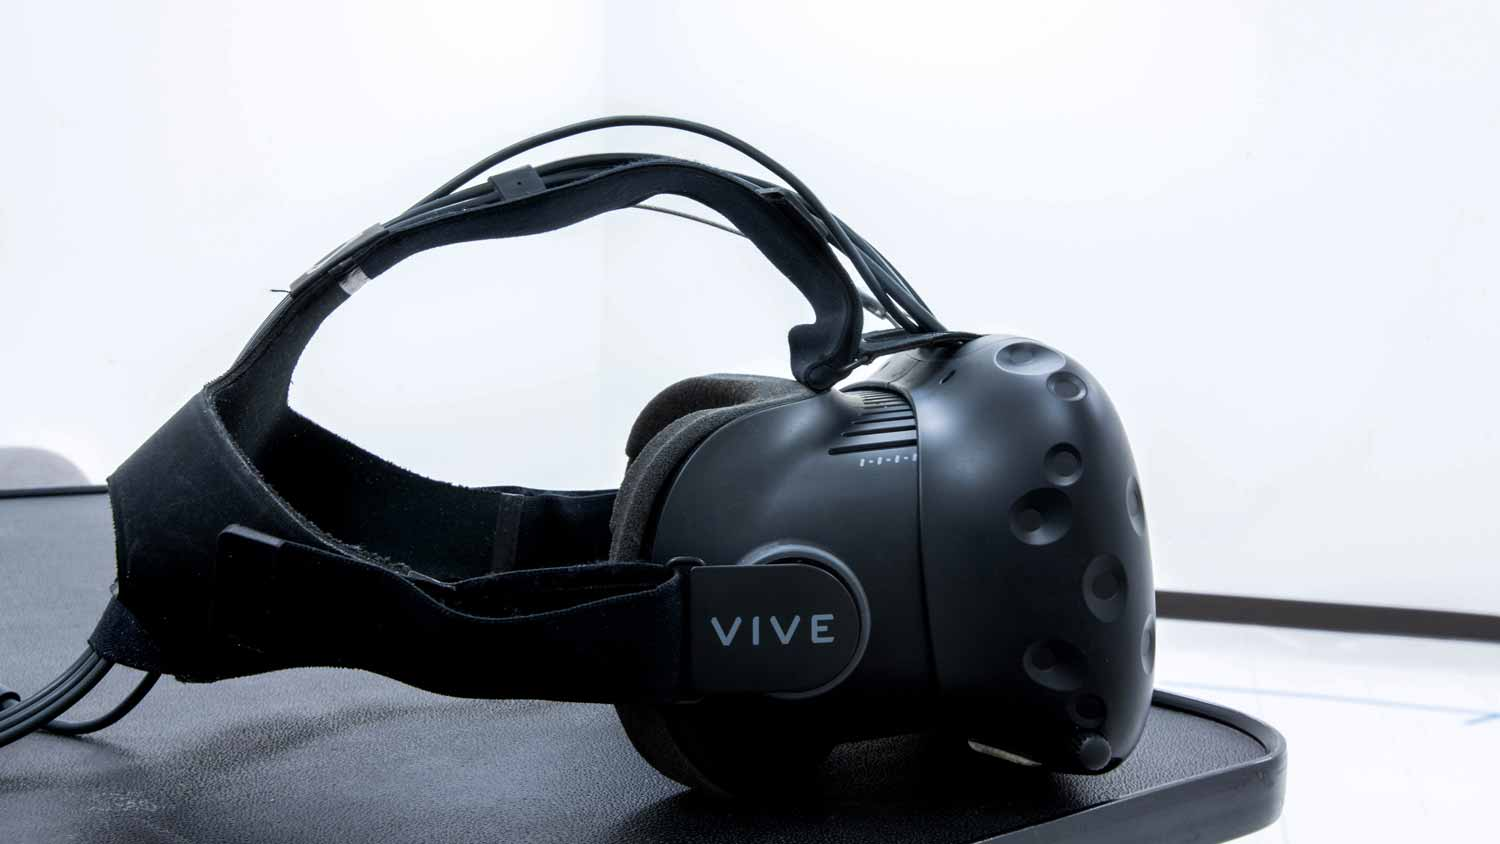 A vive virtual reality headset sitting on a table